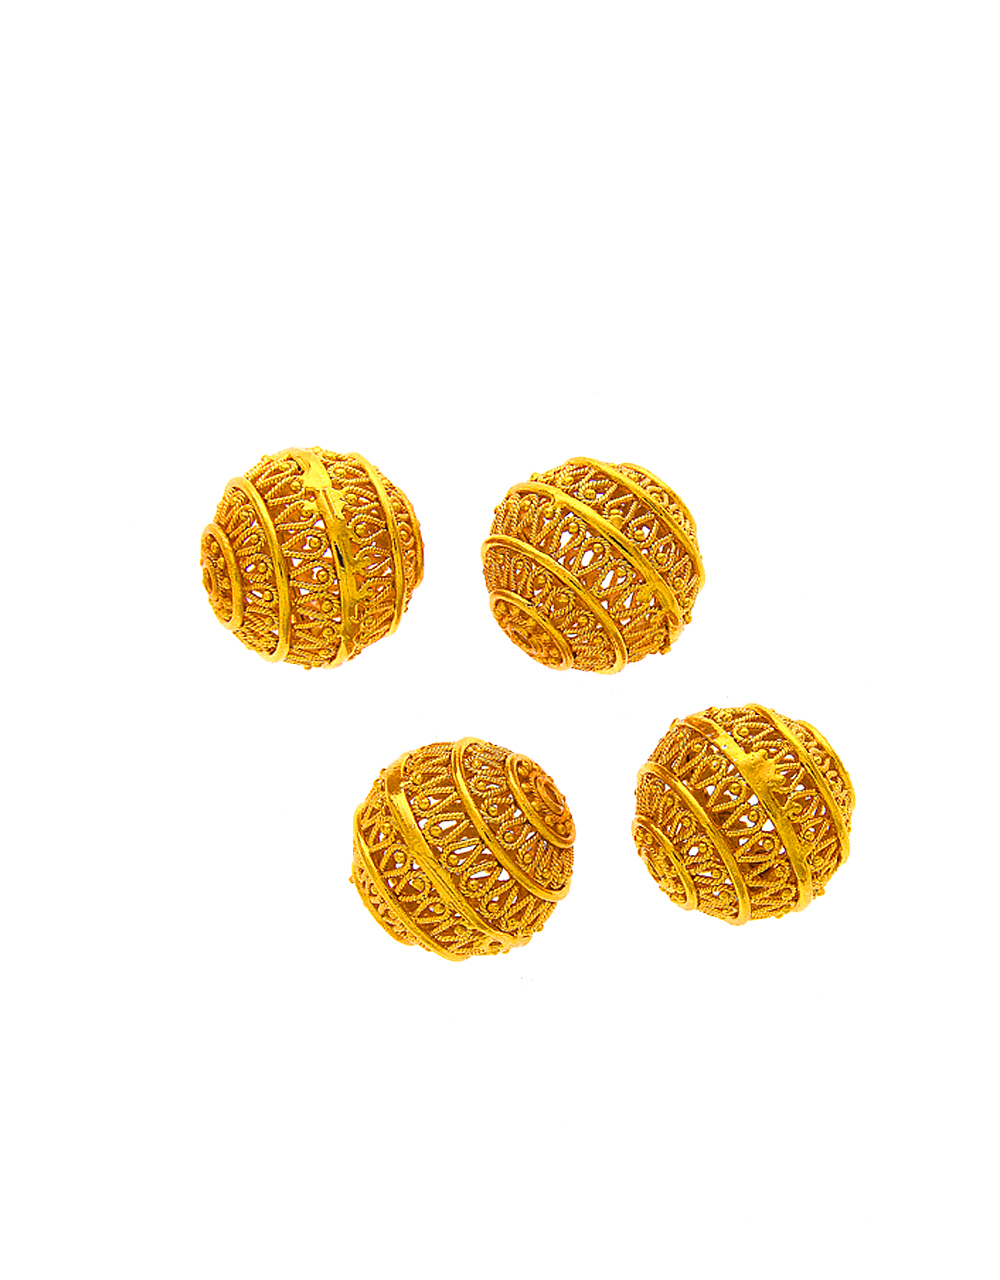 Gold Tone Jewellery Making Material